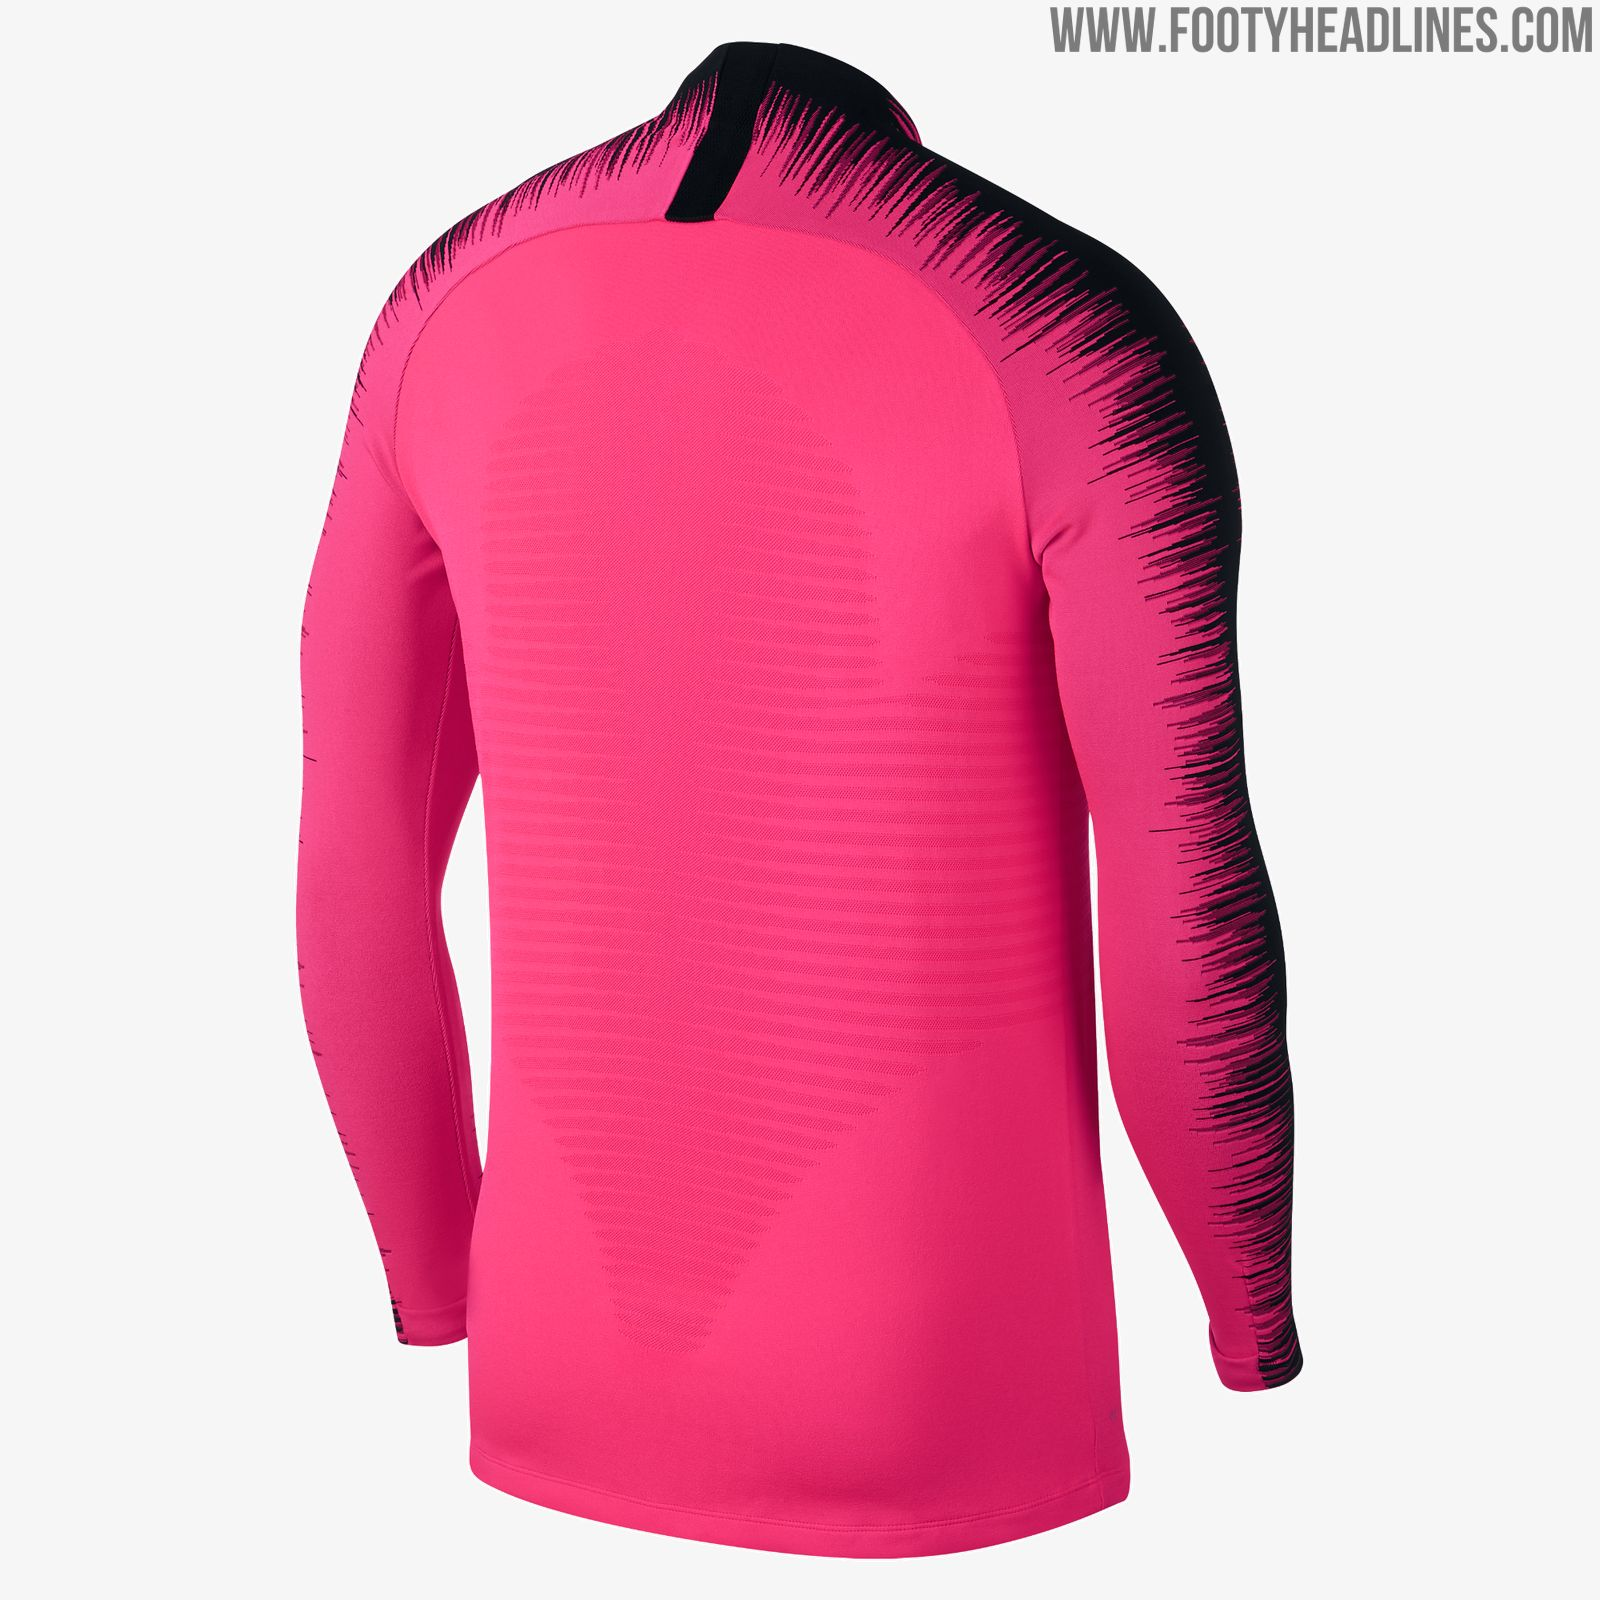 newest 789c2 d6737 New Nike Style: Pink PSG 2019 Training Kit Released | Futbolgrid